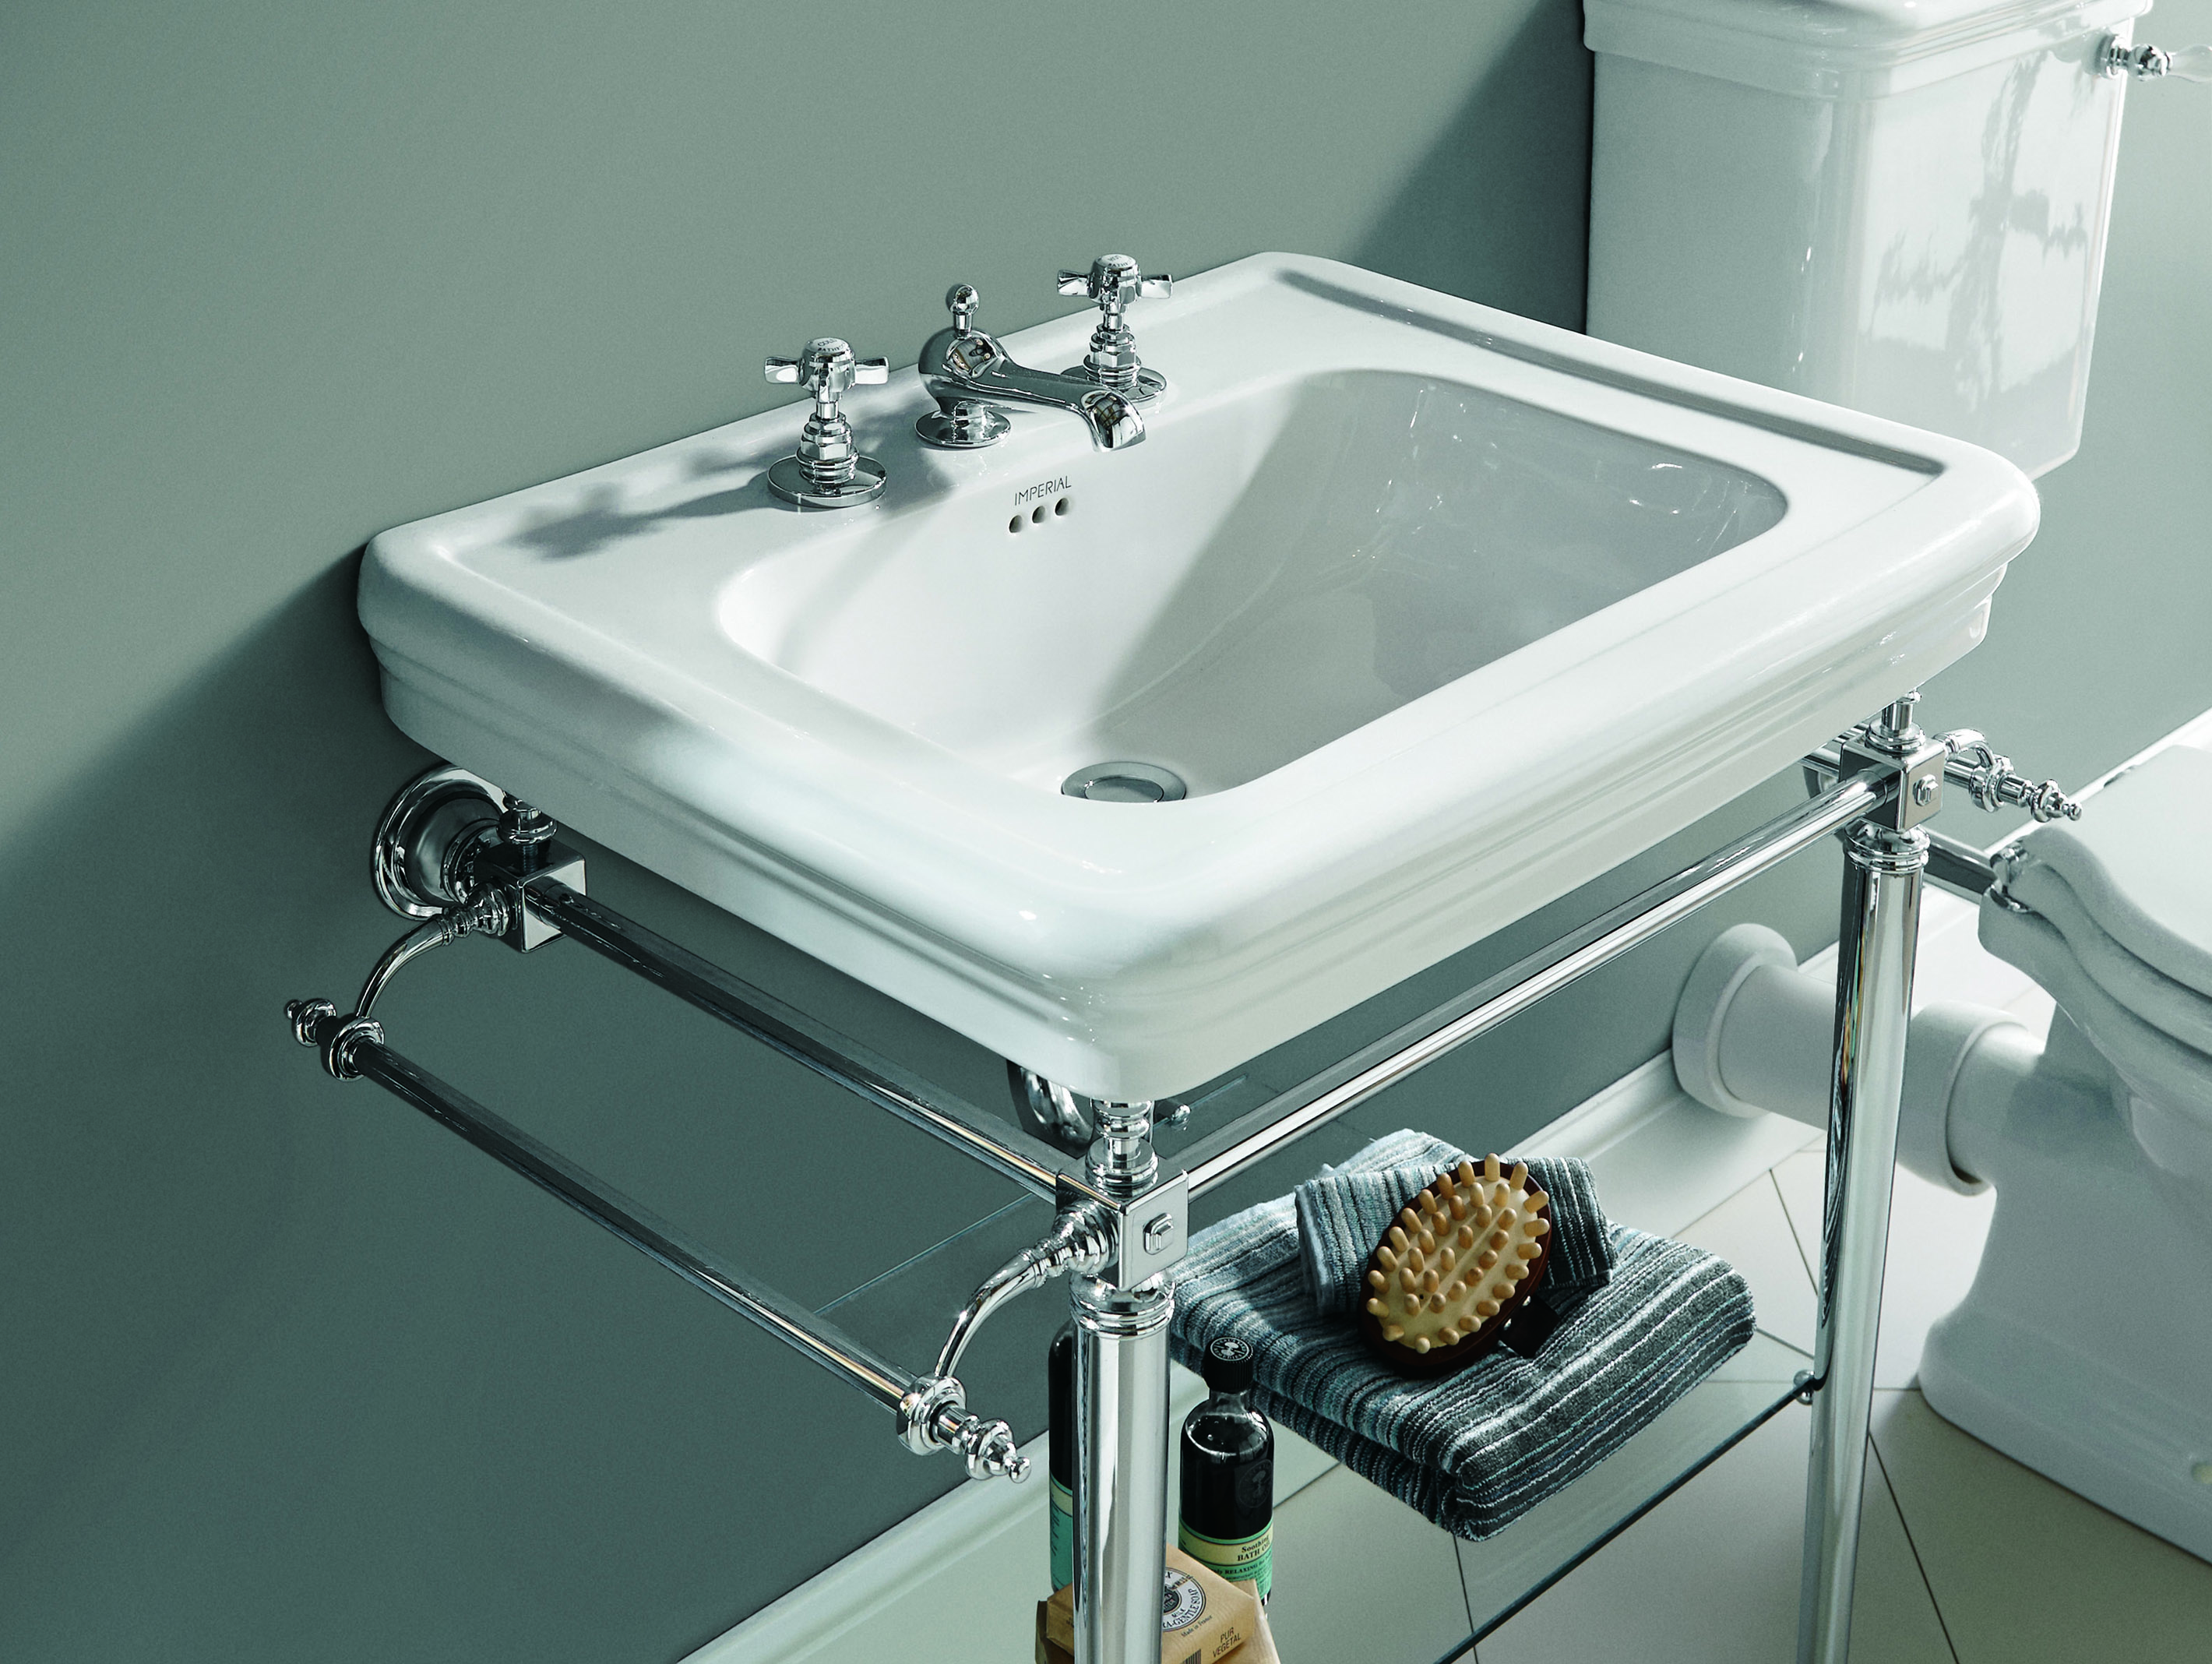 _Centre 3. Etoile Vergennes Large Basin Stand – HR